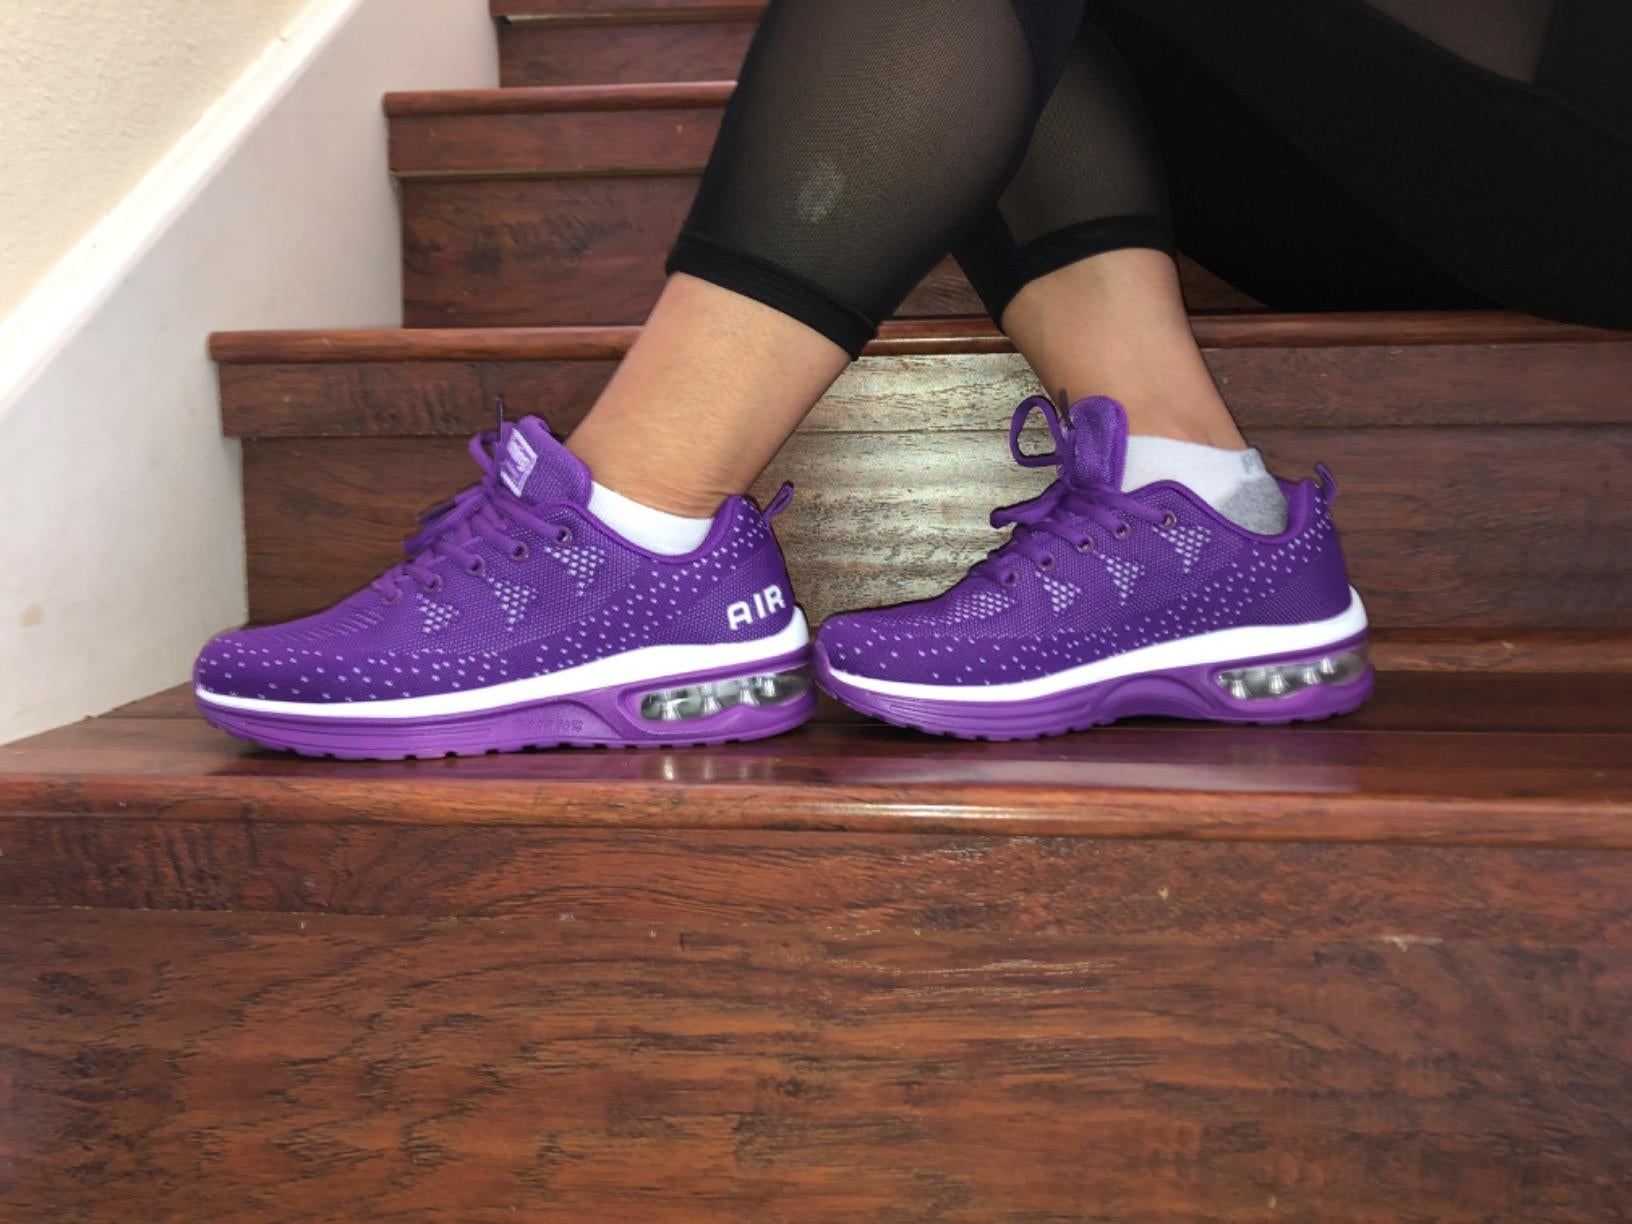 Reviewer show side view of purple STQ running shoes